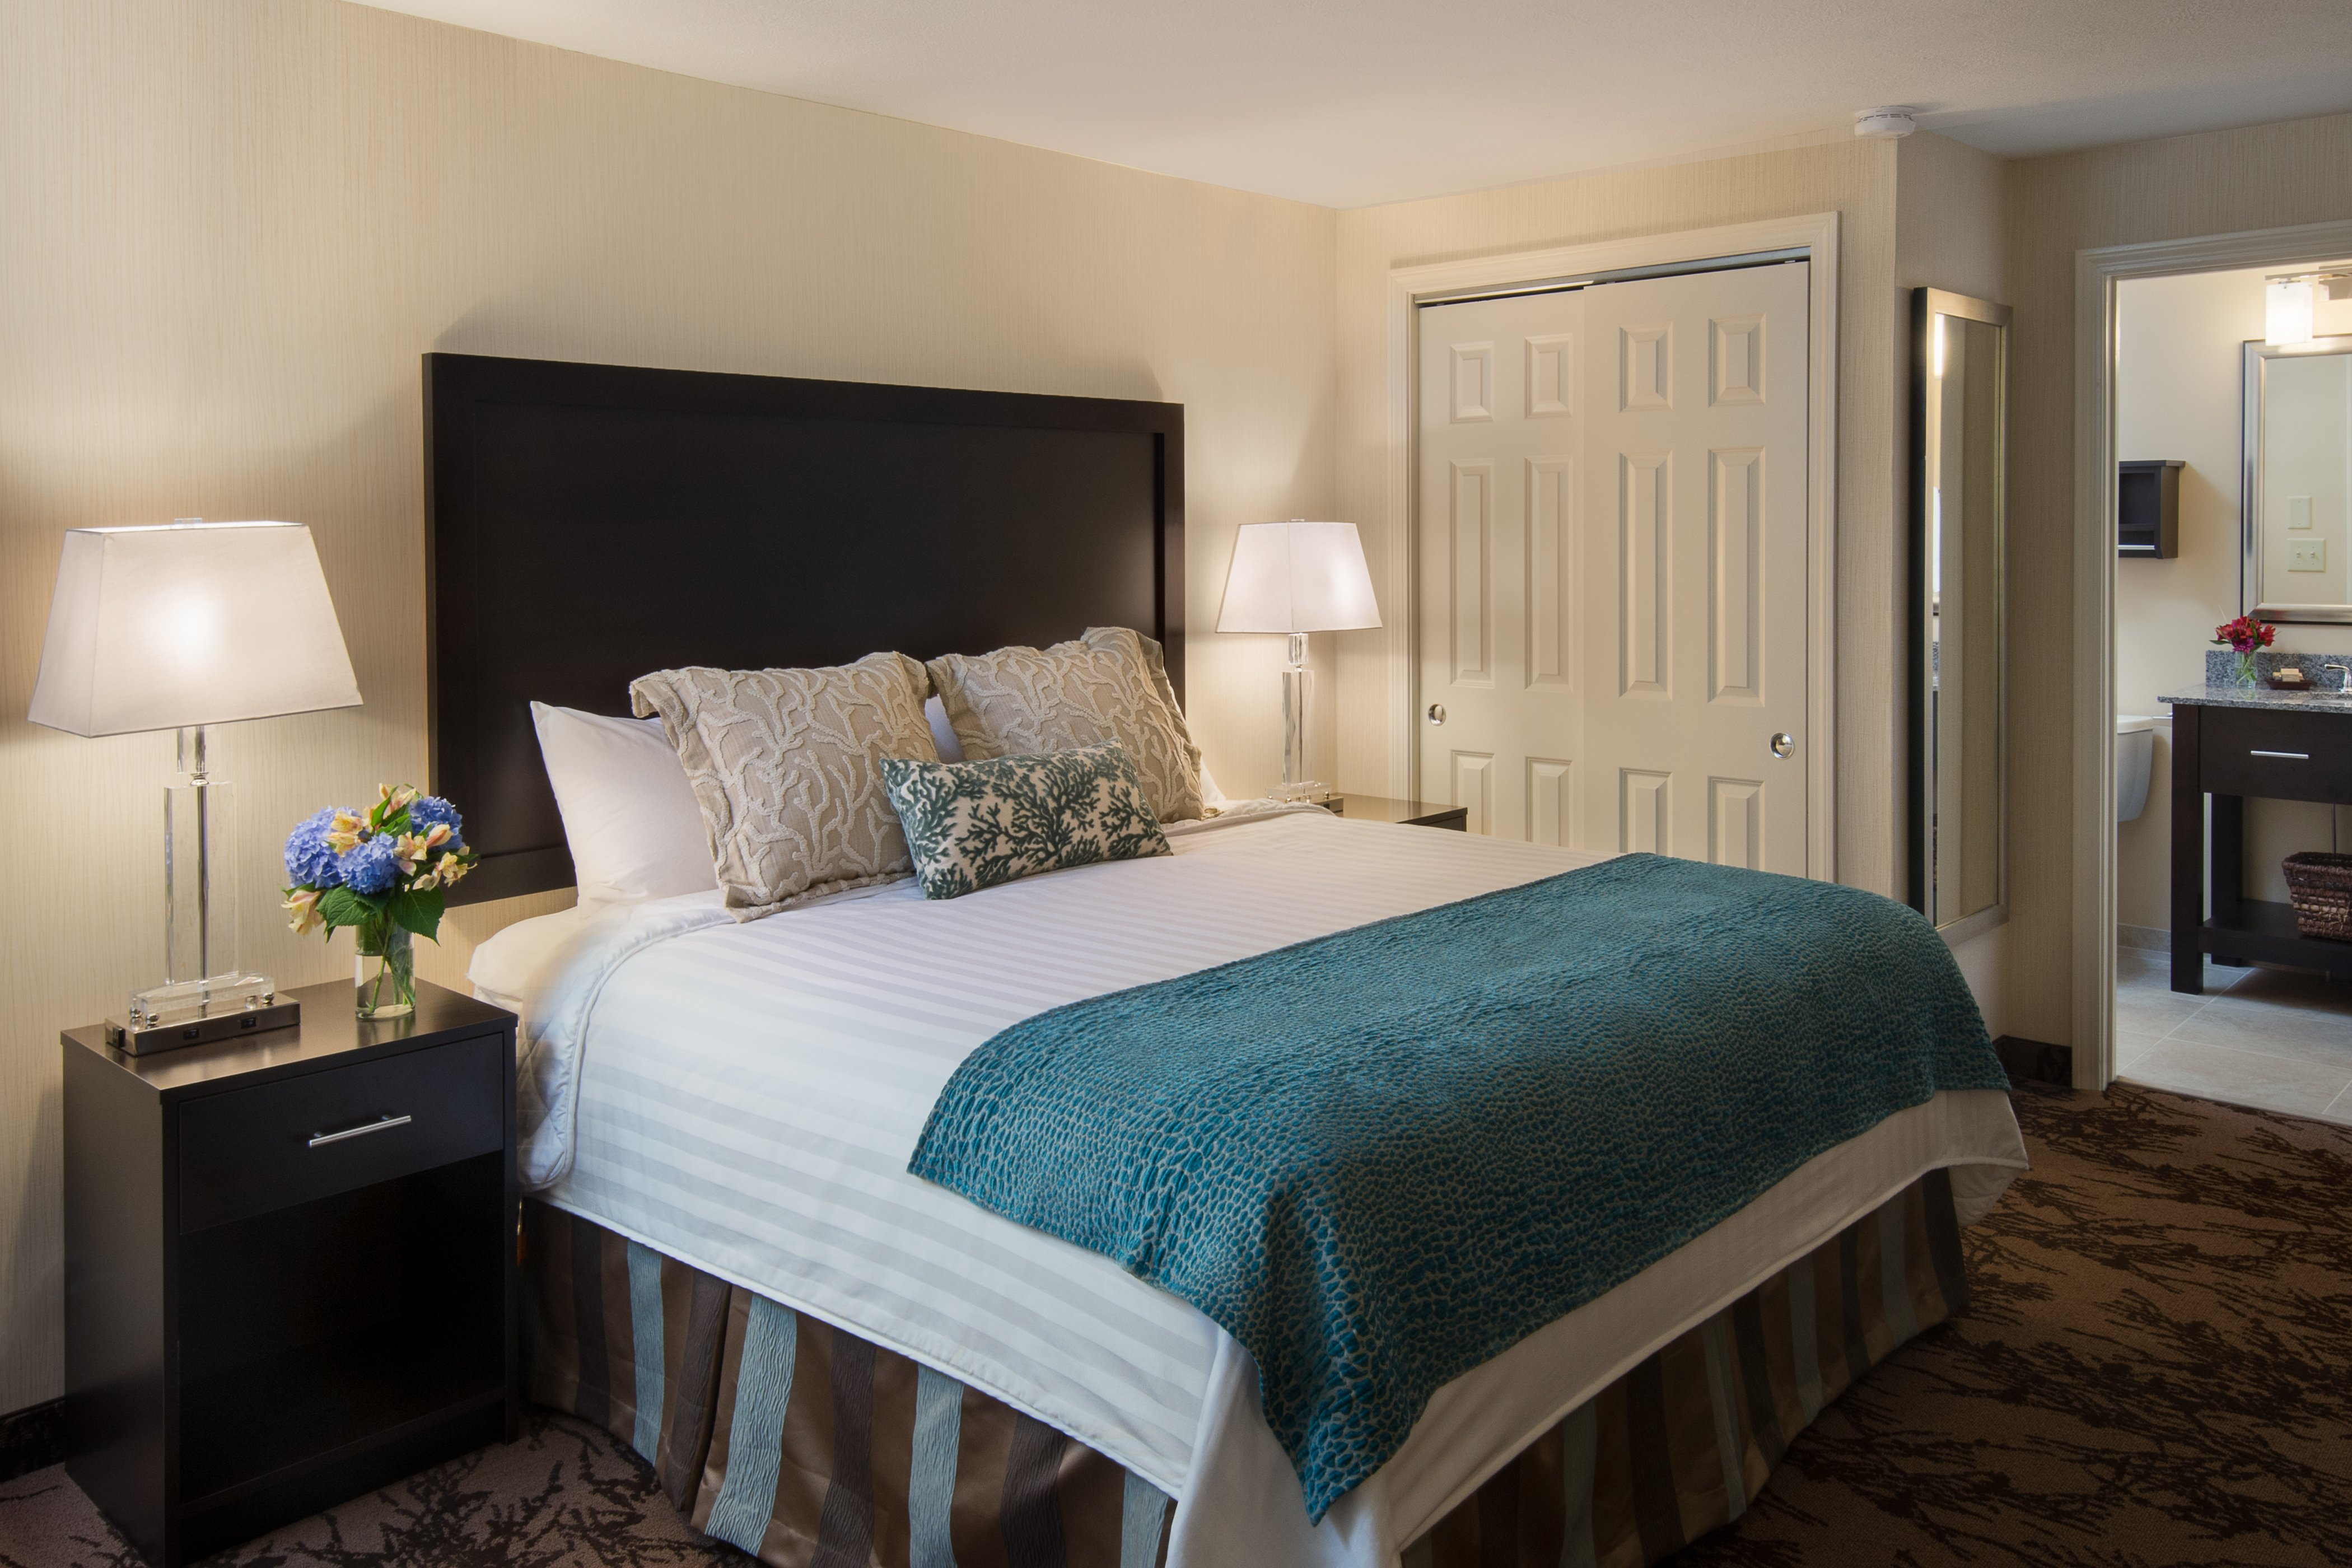 Our well-appointed guestrooms are the perfect choice for your Maine getaway.